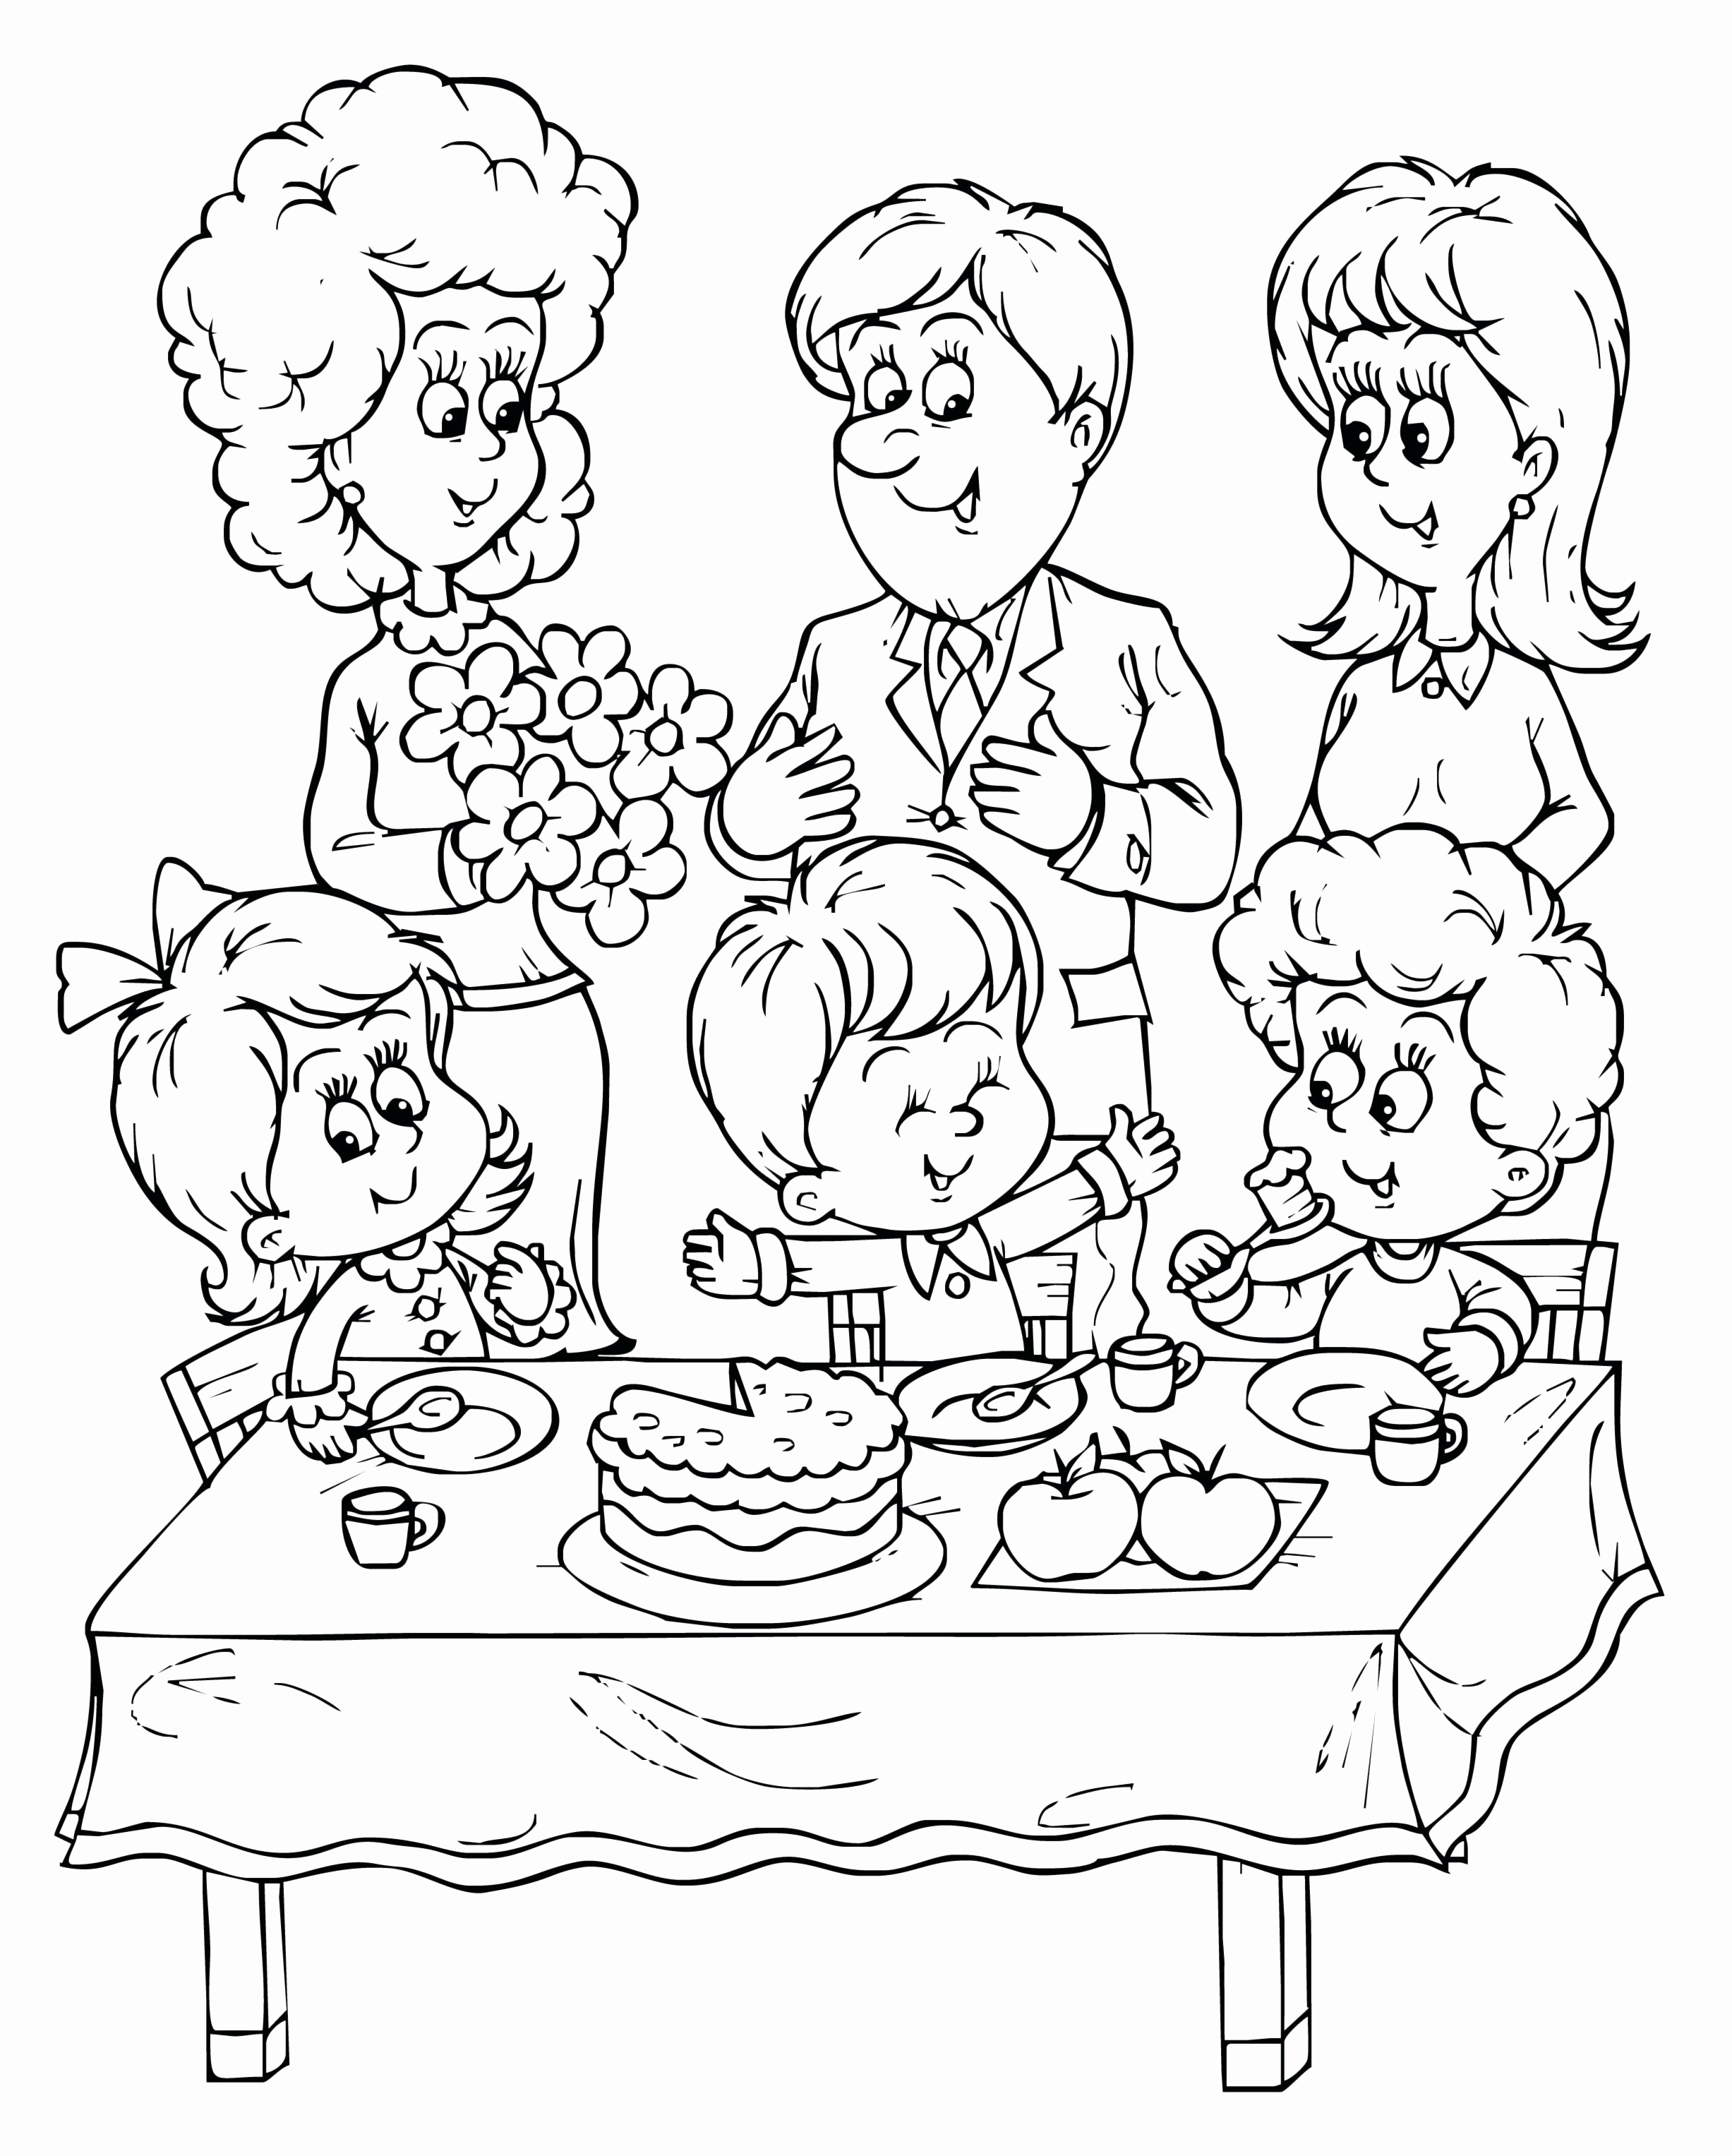 Birthday drawing at getdrawings free for personal use birthday 2454x3054 best birthday cards ideas kristyandbryce Image collections